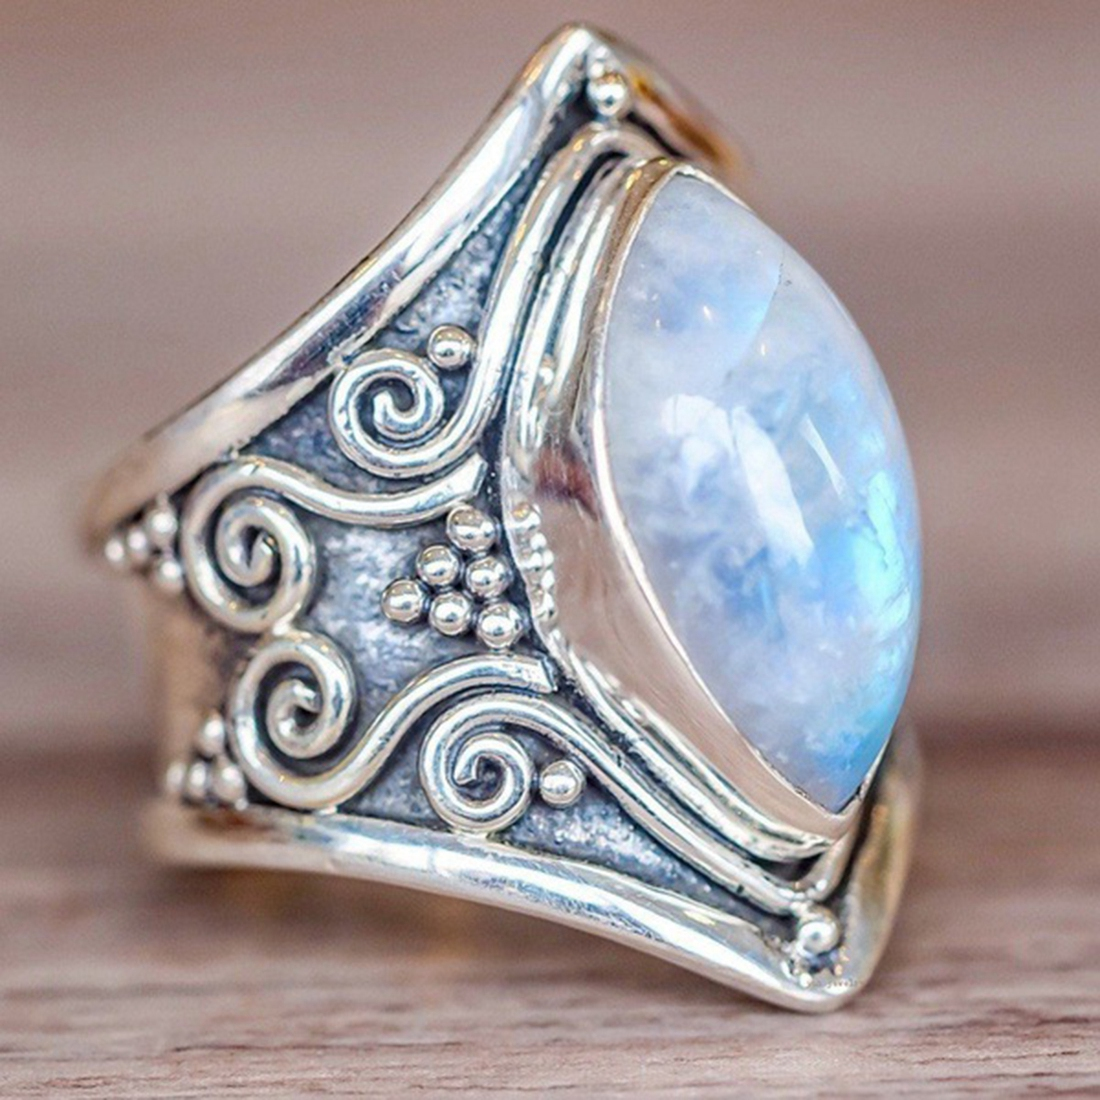 Vintage Silver Color Big Stone Ring for Women Fashion Bohemian Boho Jewelry 2020 New Hot(China)